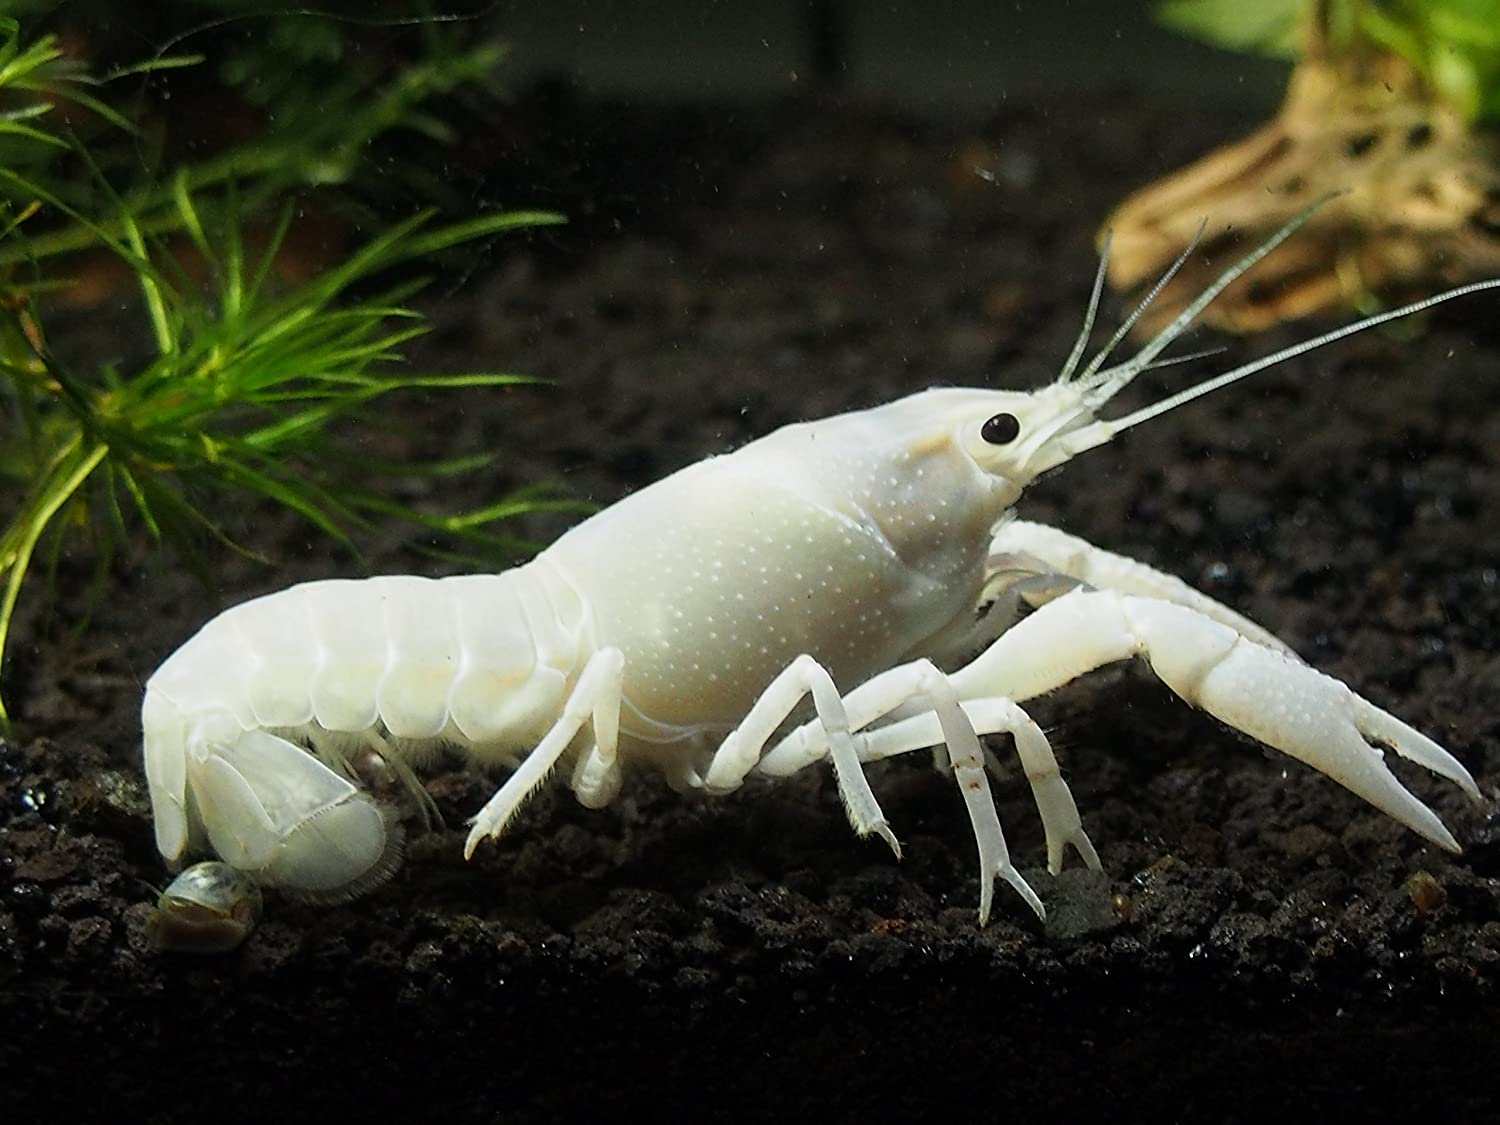 1 Live White Specter Crayfish/Freshwater Lobster (3″+ Young Adult!) – Stunning White Variant of the Electric Blue Crayfish by Aquatic Arts (formerly InvertObsession)